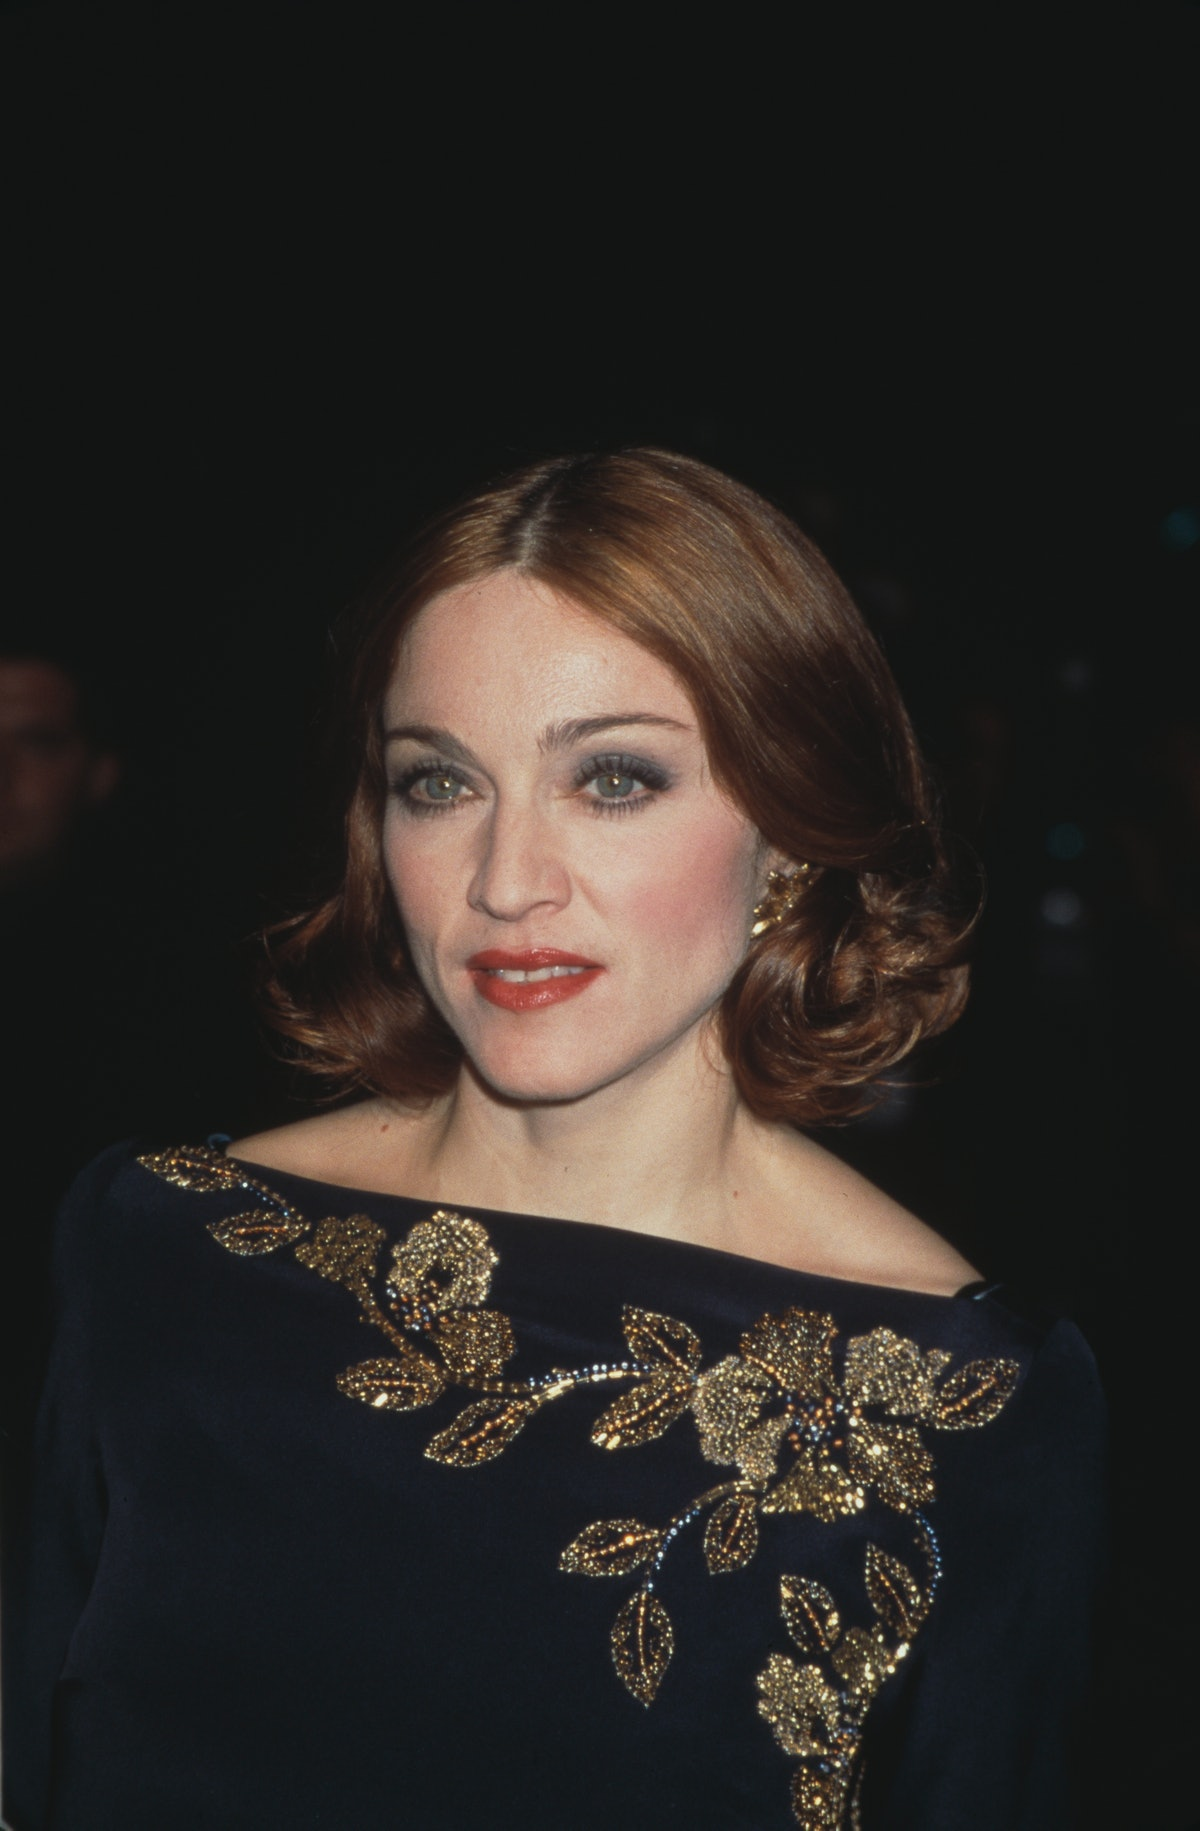 American singer-songwriter and actress Madonna, wearing a blue outfit decorated with gold leaves, at...